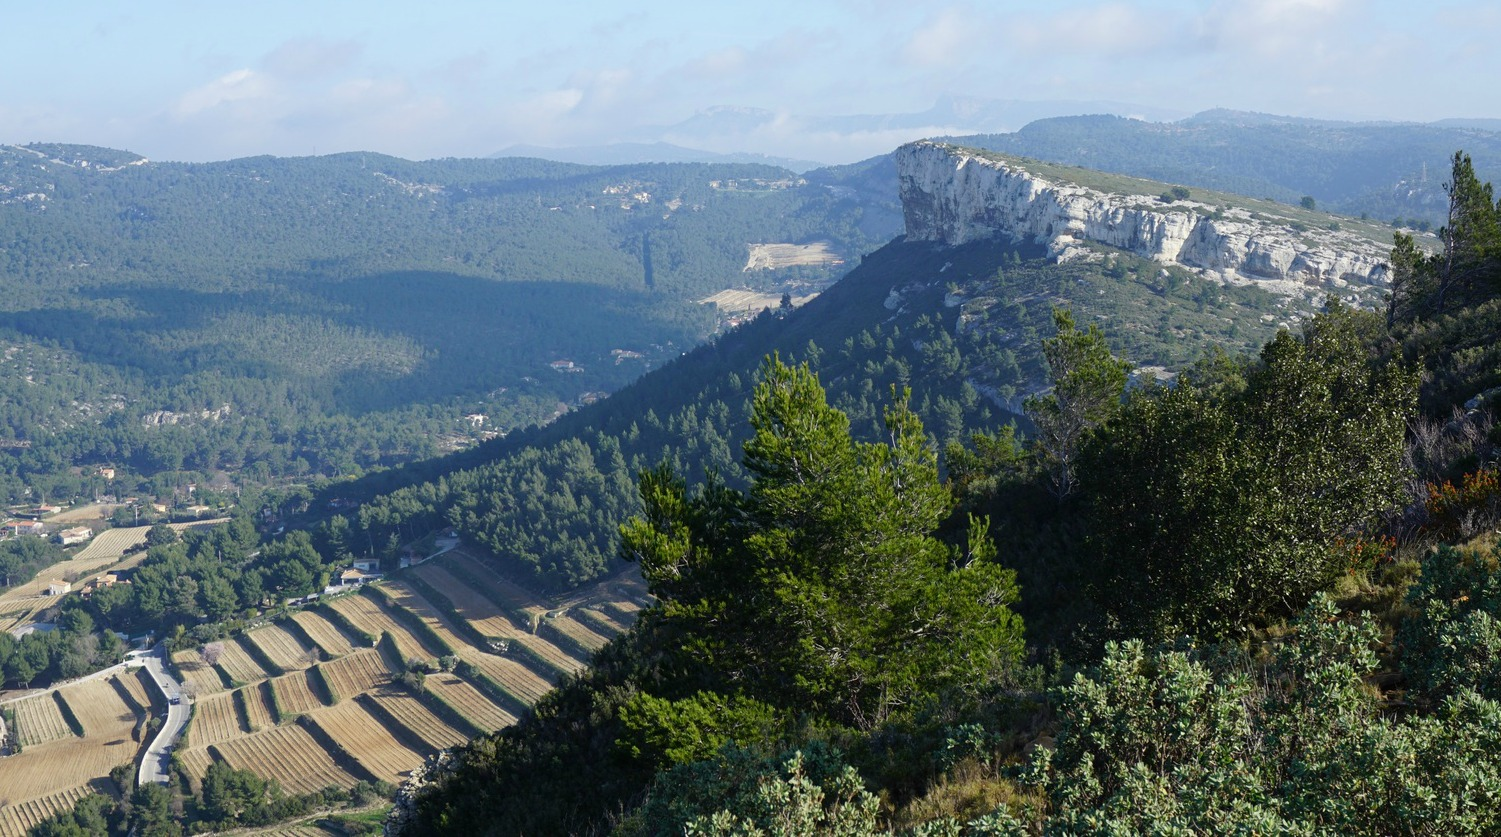 Cassis vineyards below Couronne de Charlemagne